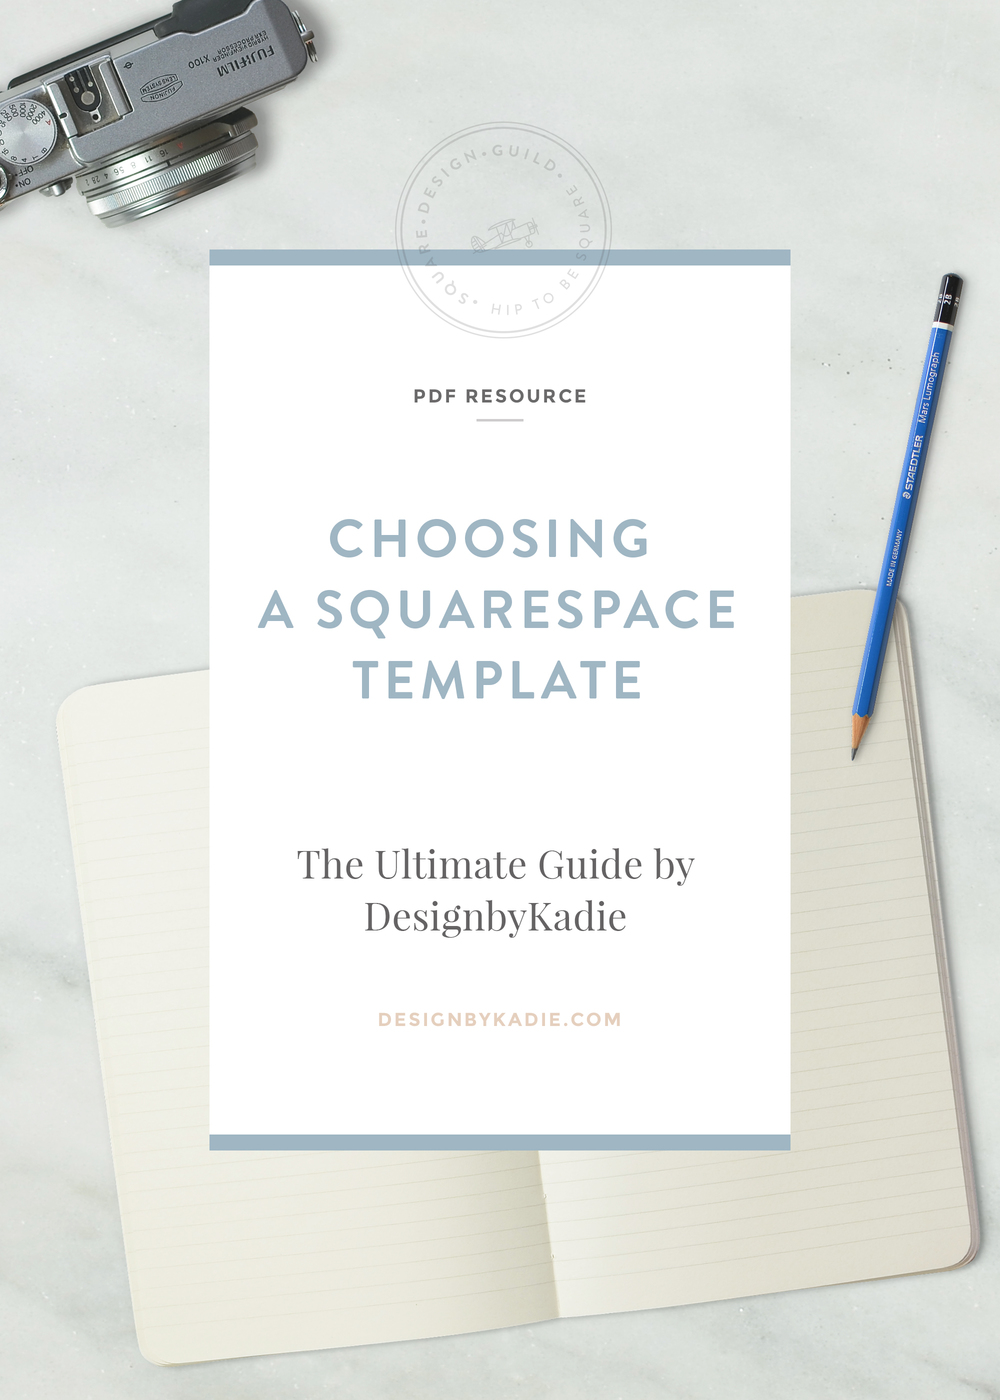 Squarespace Design Guild | Choosing a Squarespace Template | PDF by DesignbyKadie